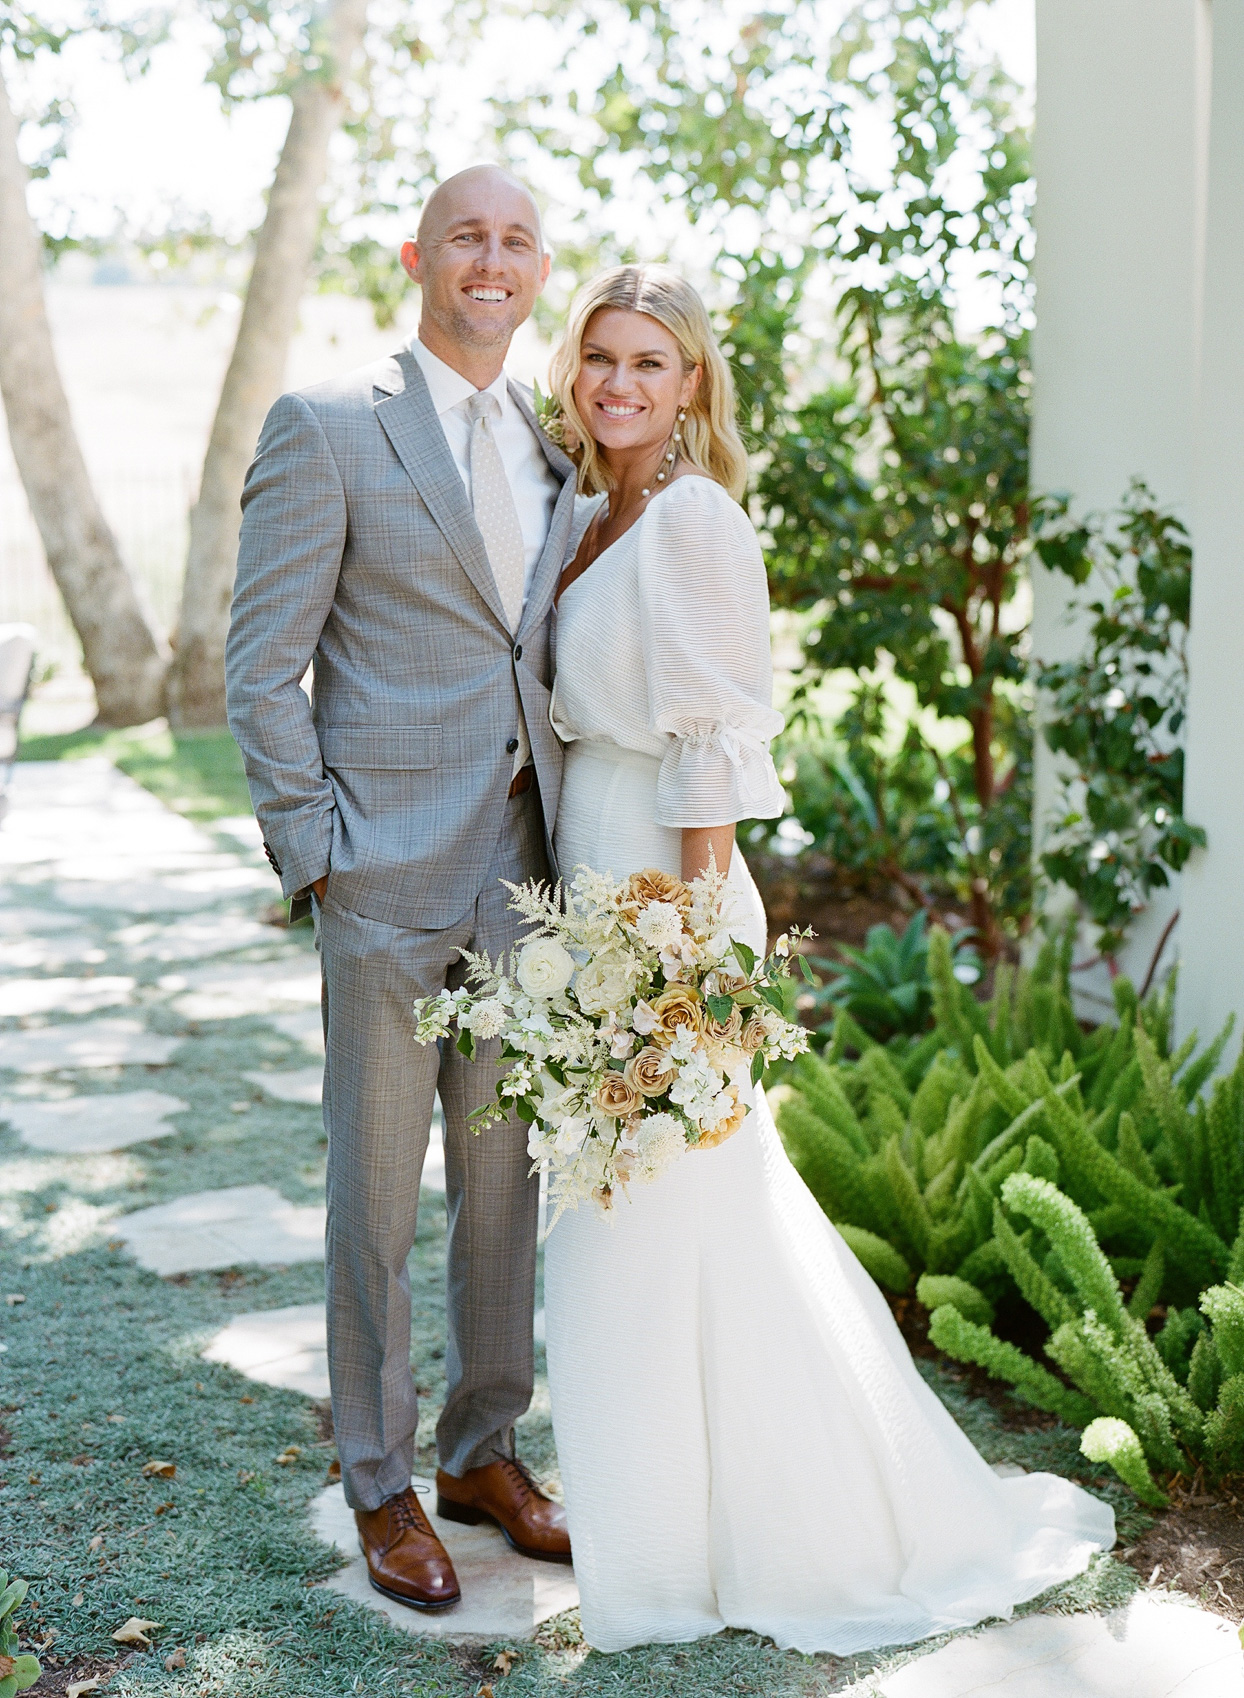 bride and groom smiling outside on stone pathway